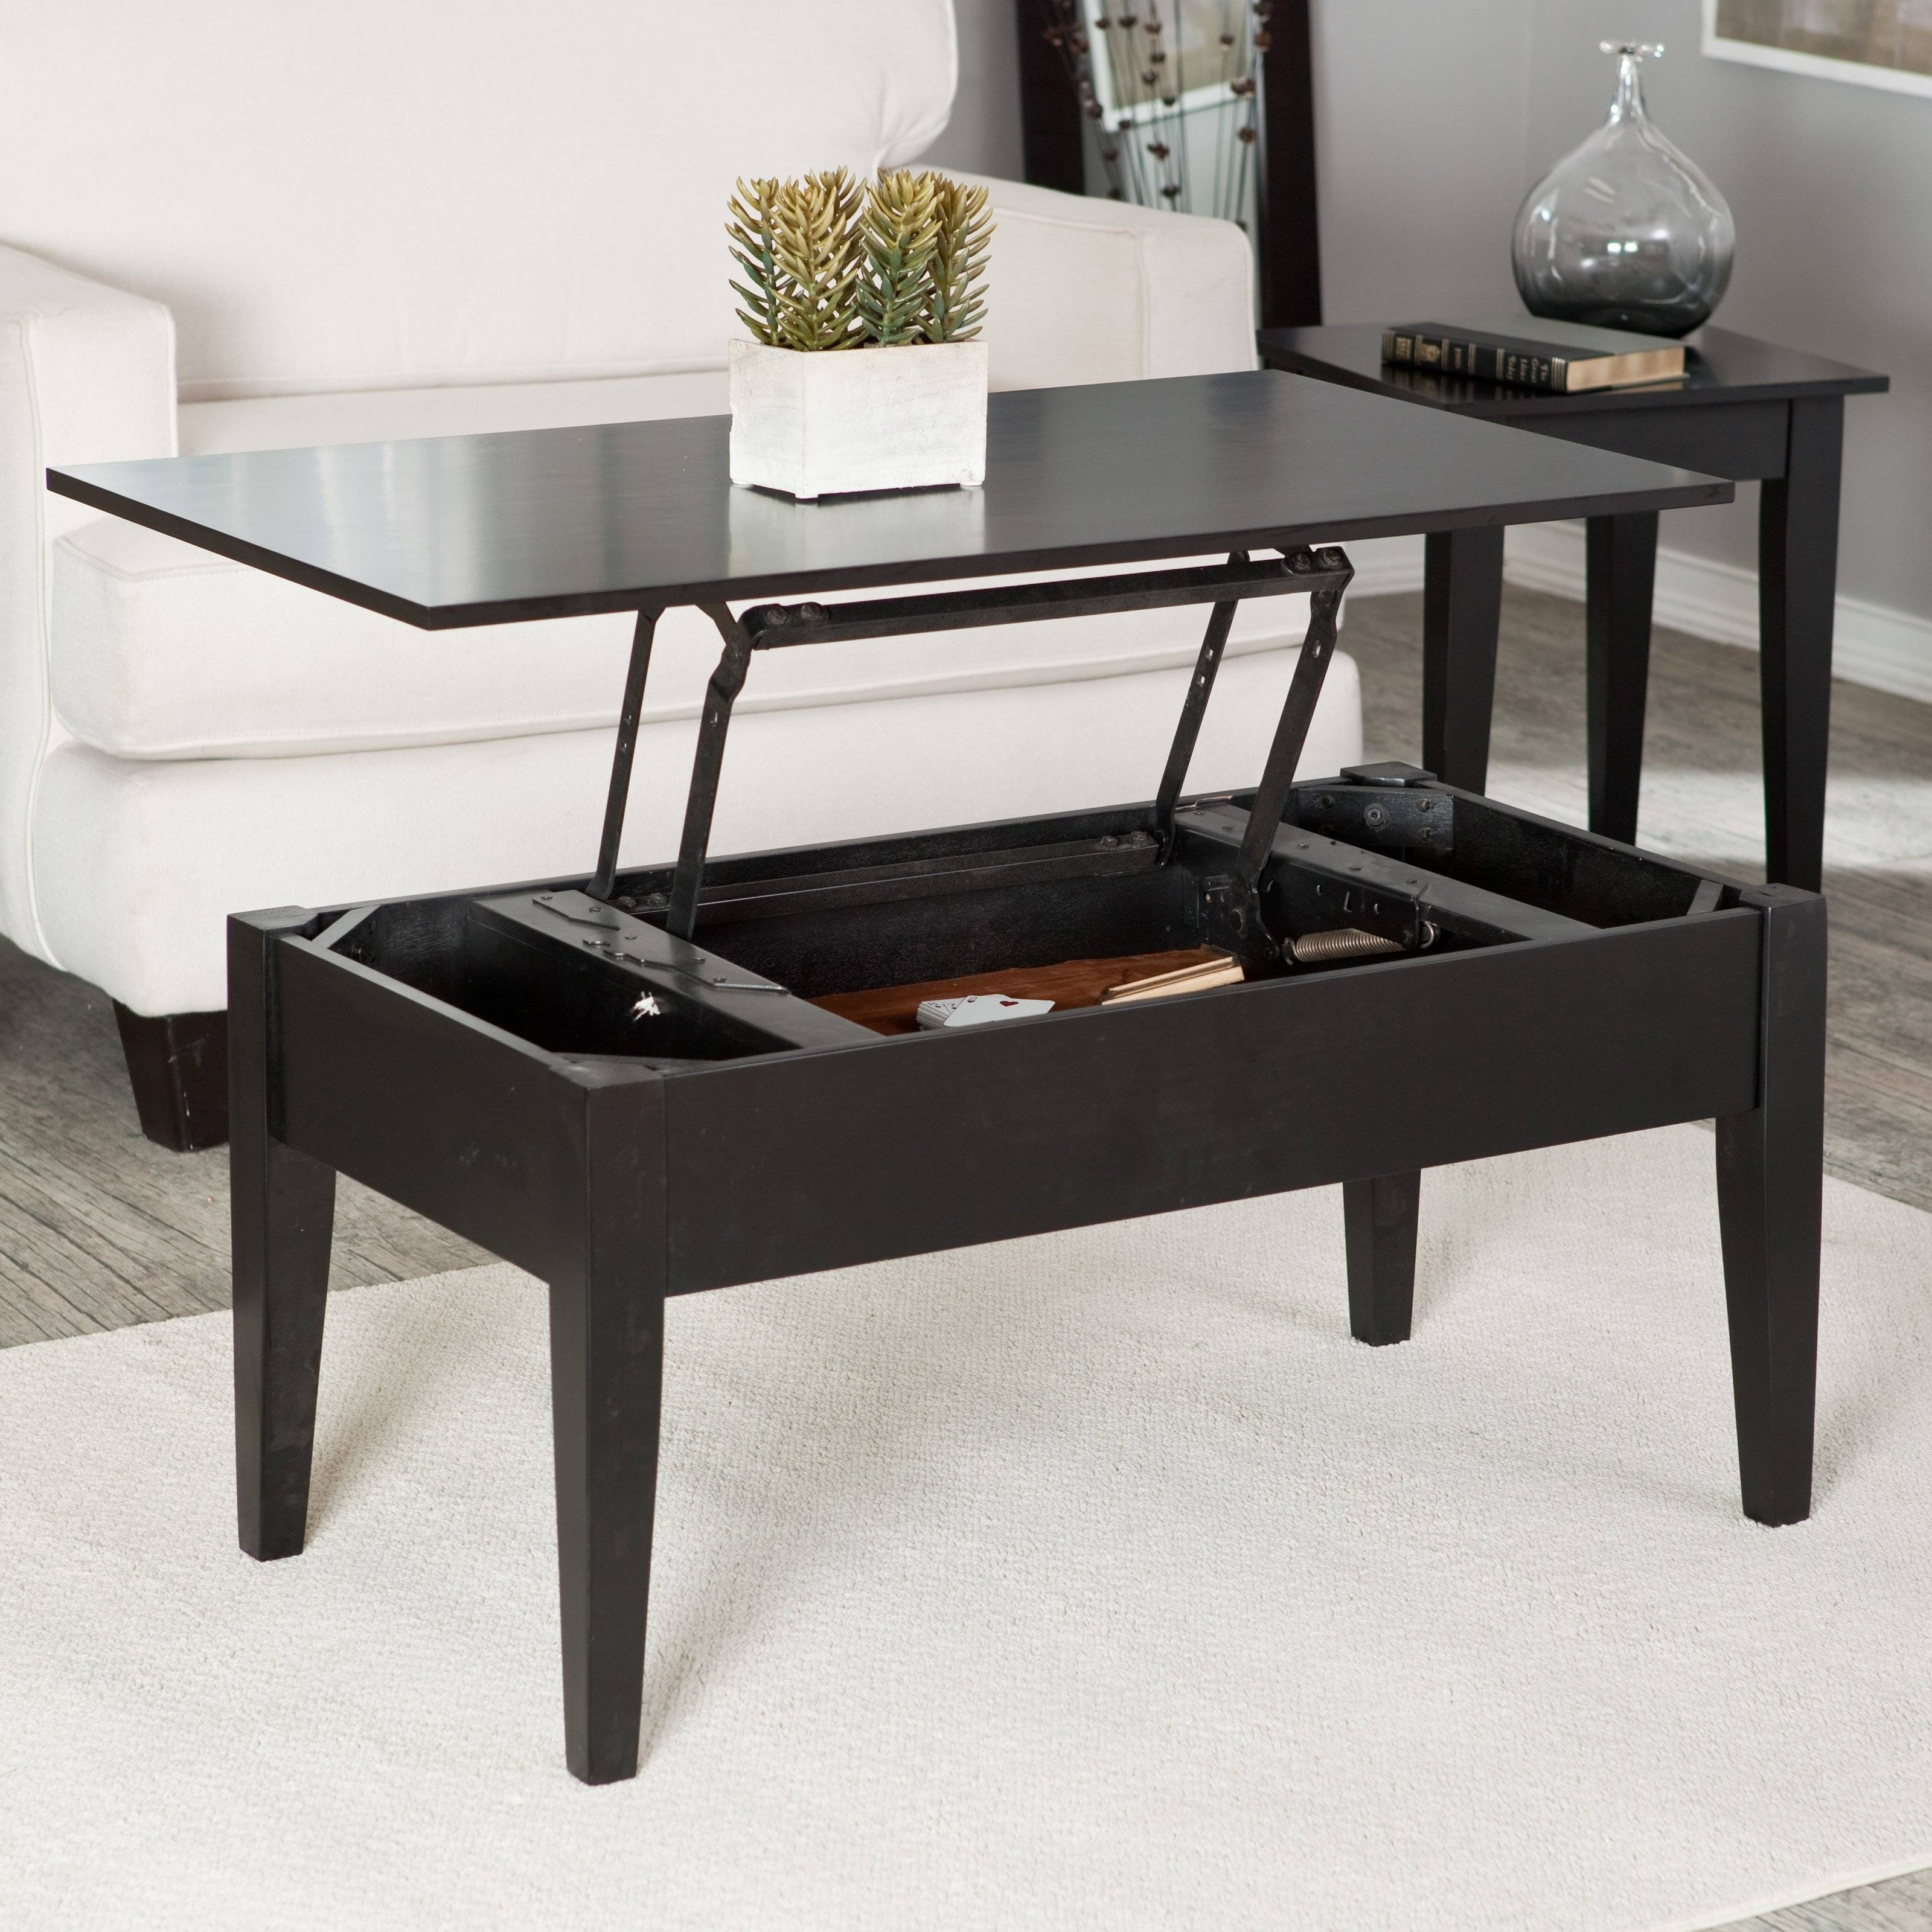 Turner Lift Top Coffee Table - Black | Hayneedle inside Coffee Tables With Rising Top (Image 28 of 30)